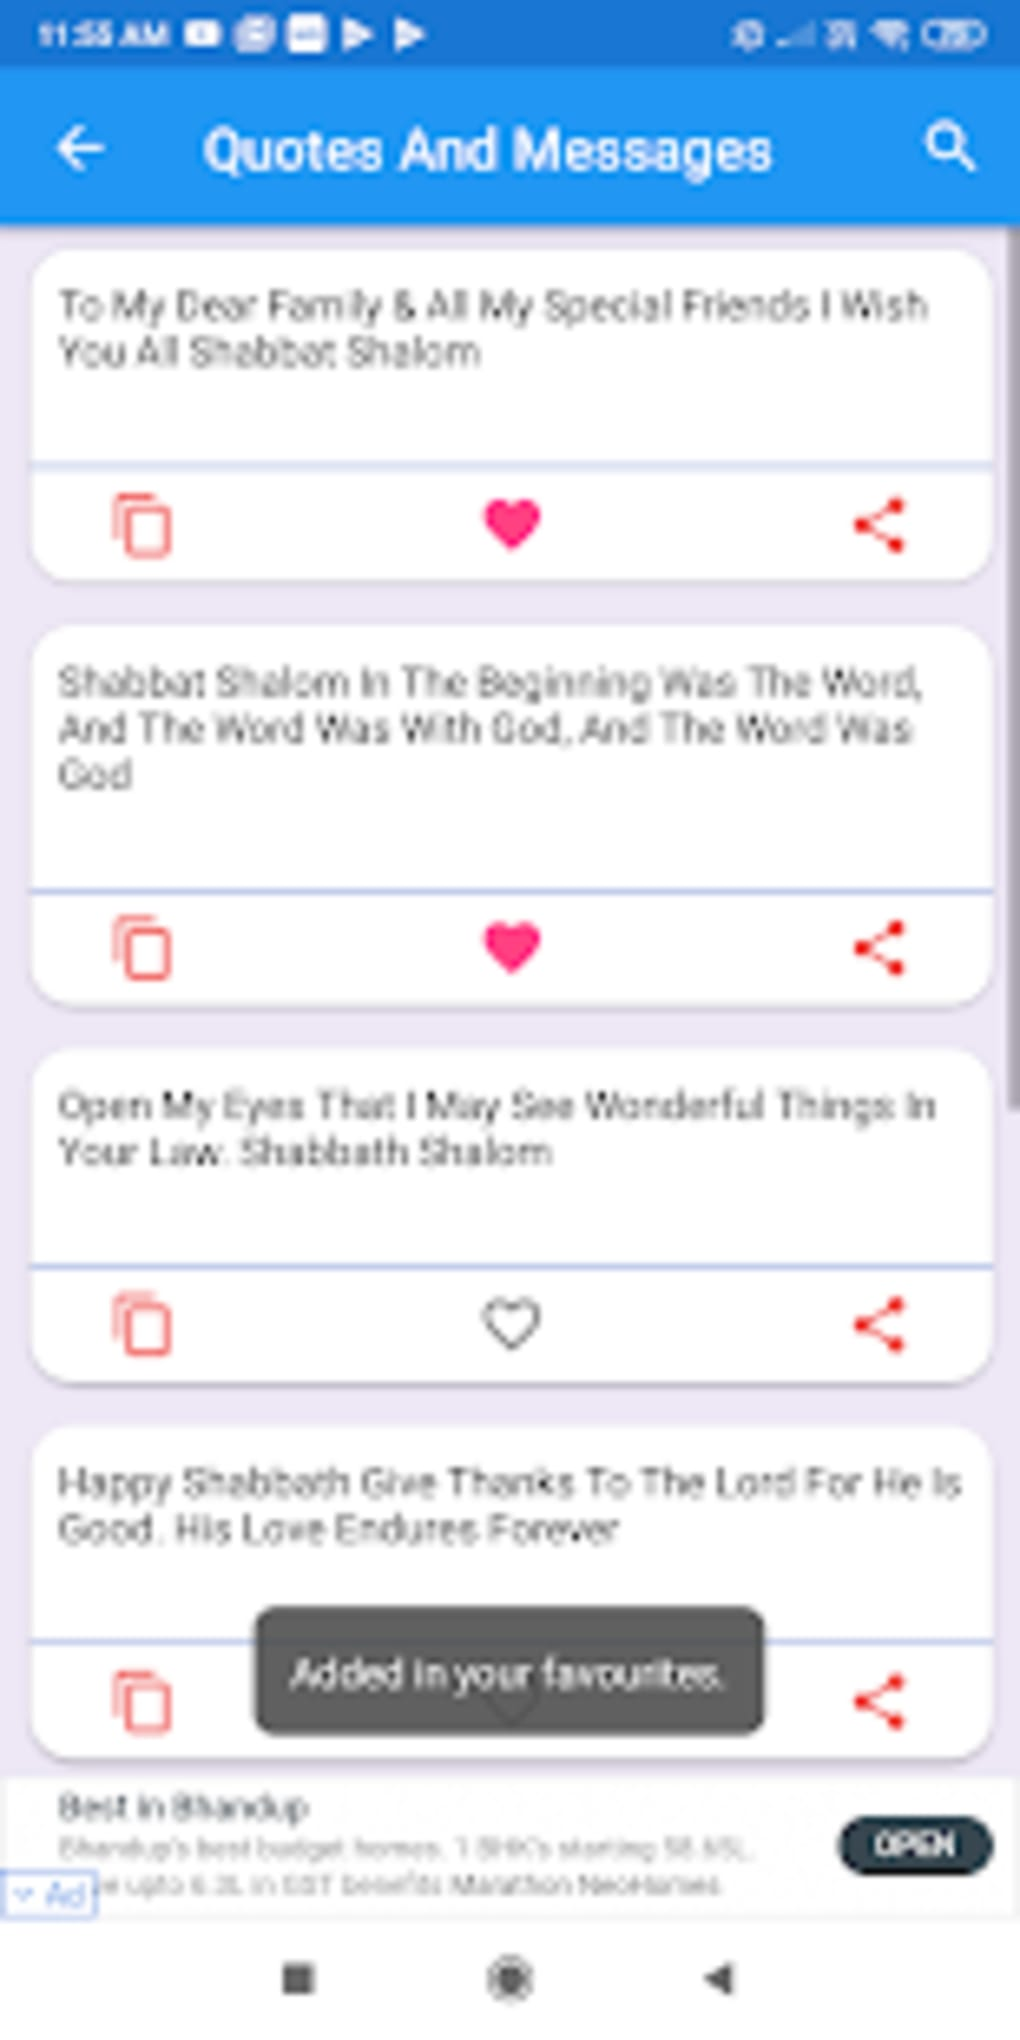 shabbat shalom greeting wishes quotes gif apk for android